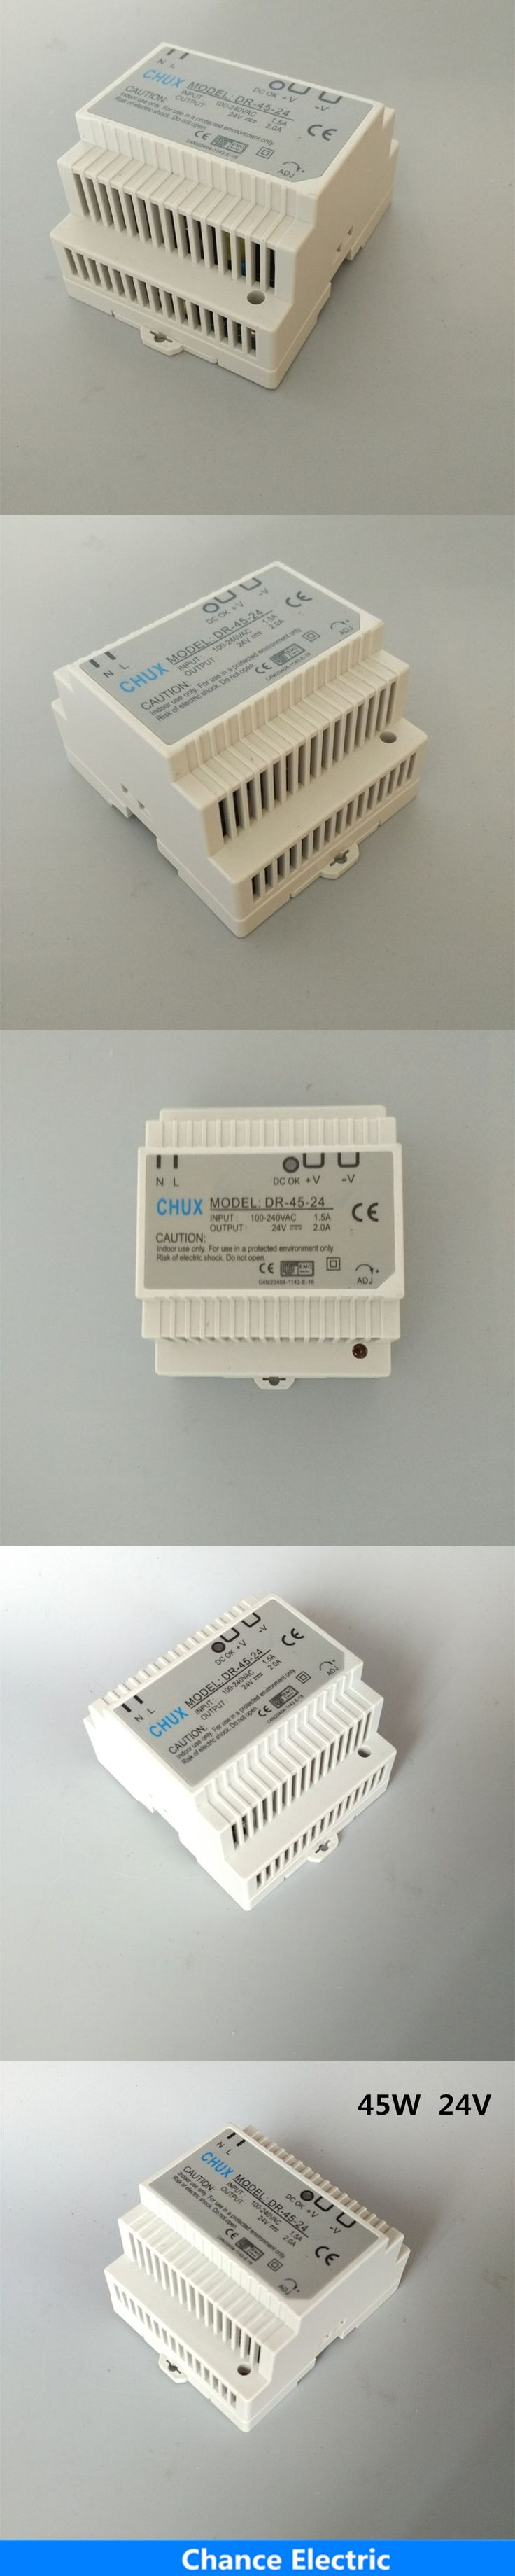 DR-45-24 LED Din Rail mounted Power Supply Transformer 110V 220V AC to DC 24V 2A 45W Output Free Shipping